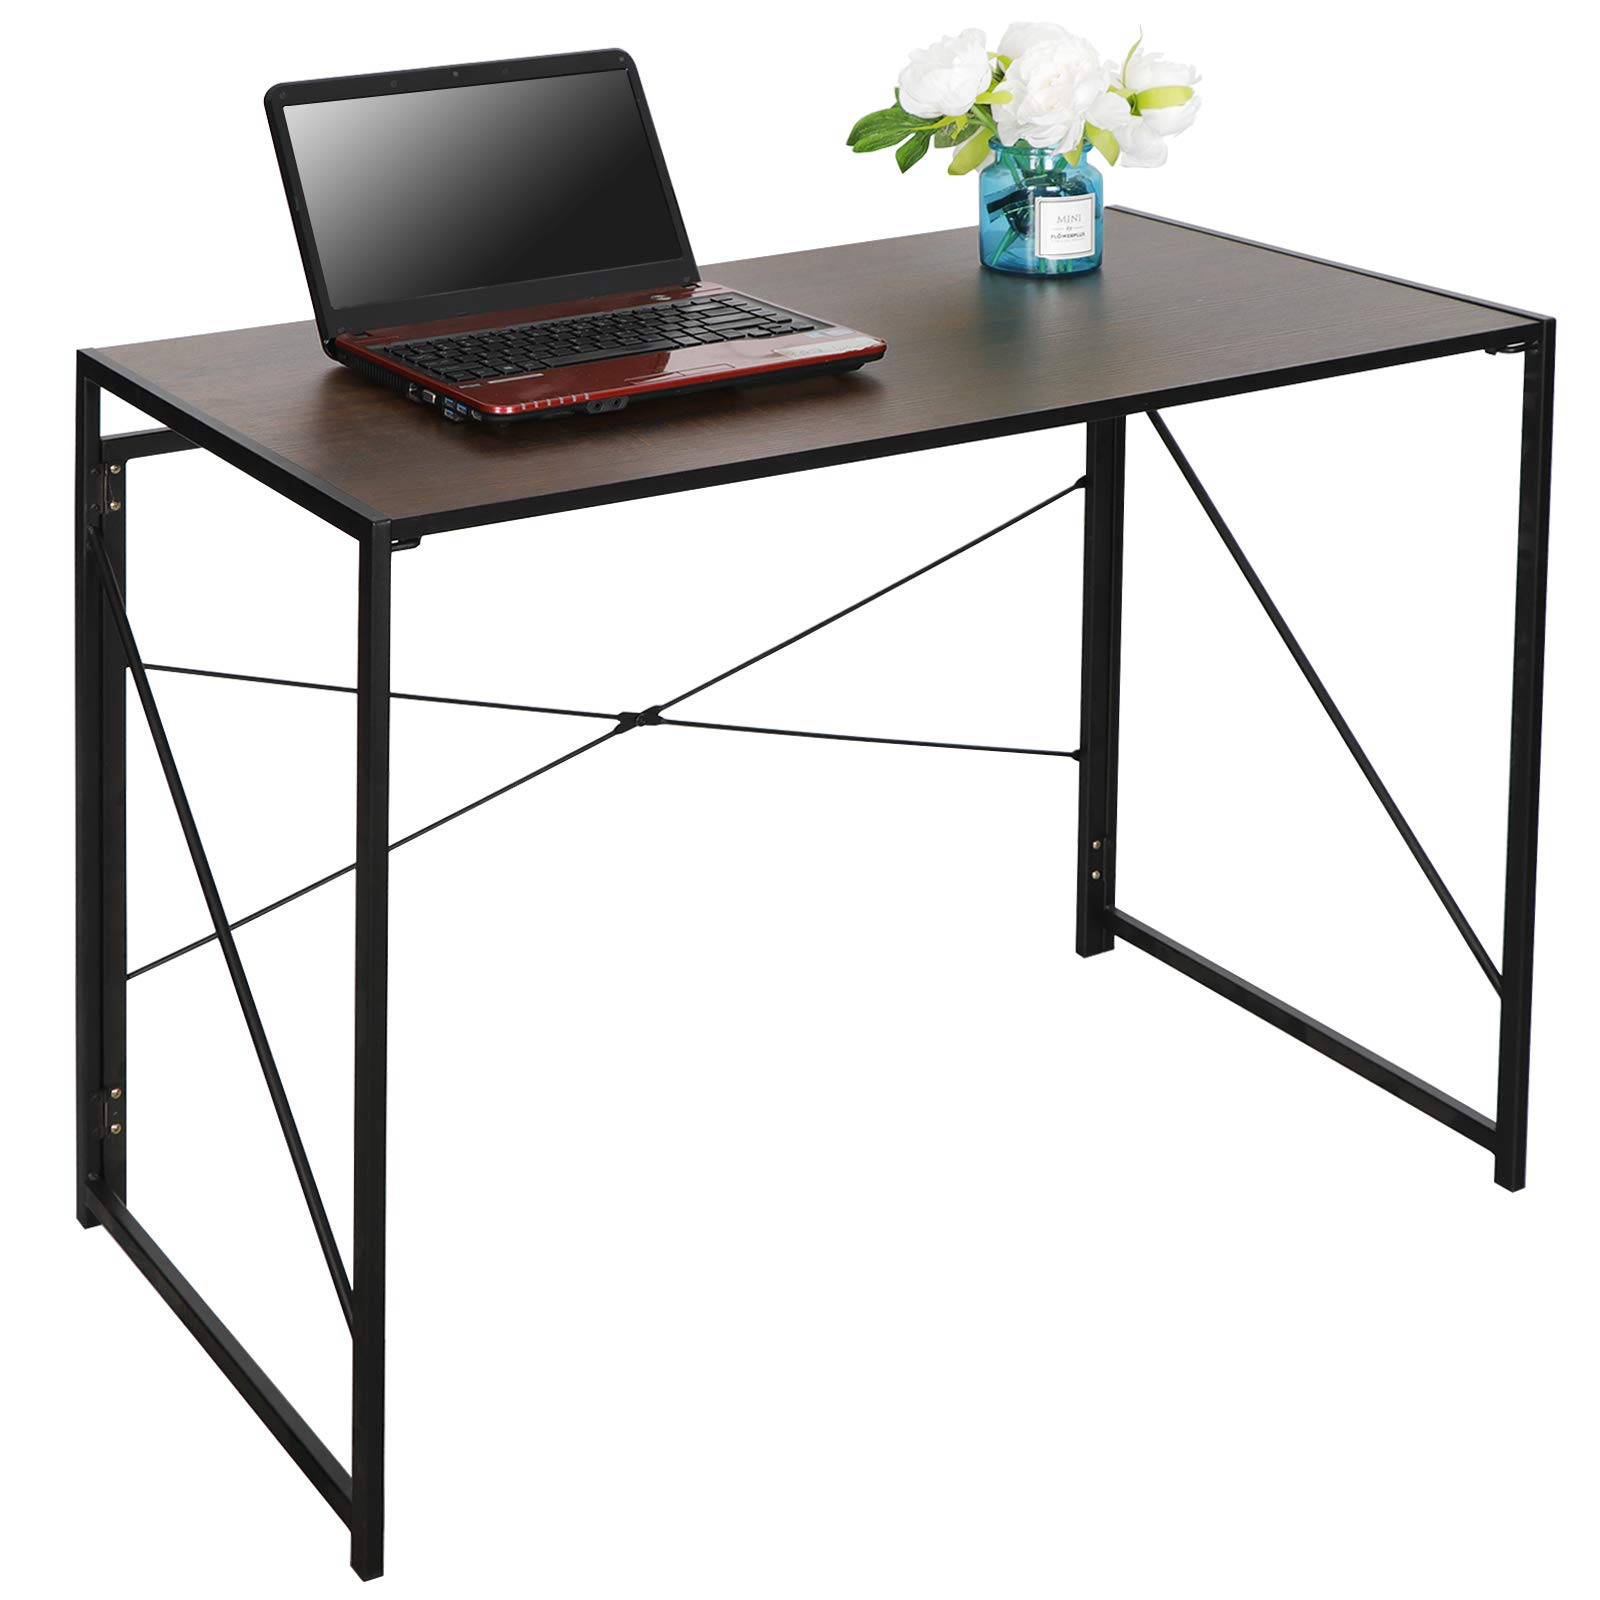 SUPER DEAL Modern Folding Computer Writing Desk Home Office Study Desk, Multipurpose Laptop Table Computer Workstation - Widen Steel Frame - Fully Folded - Waterproof and No Deformation